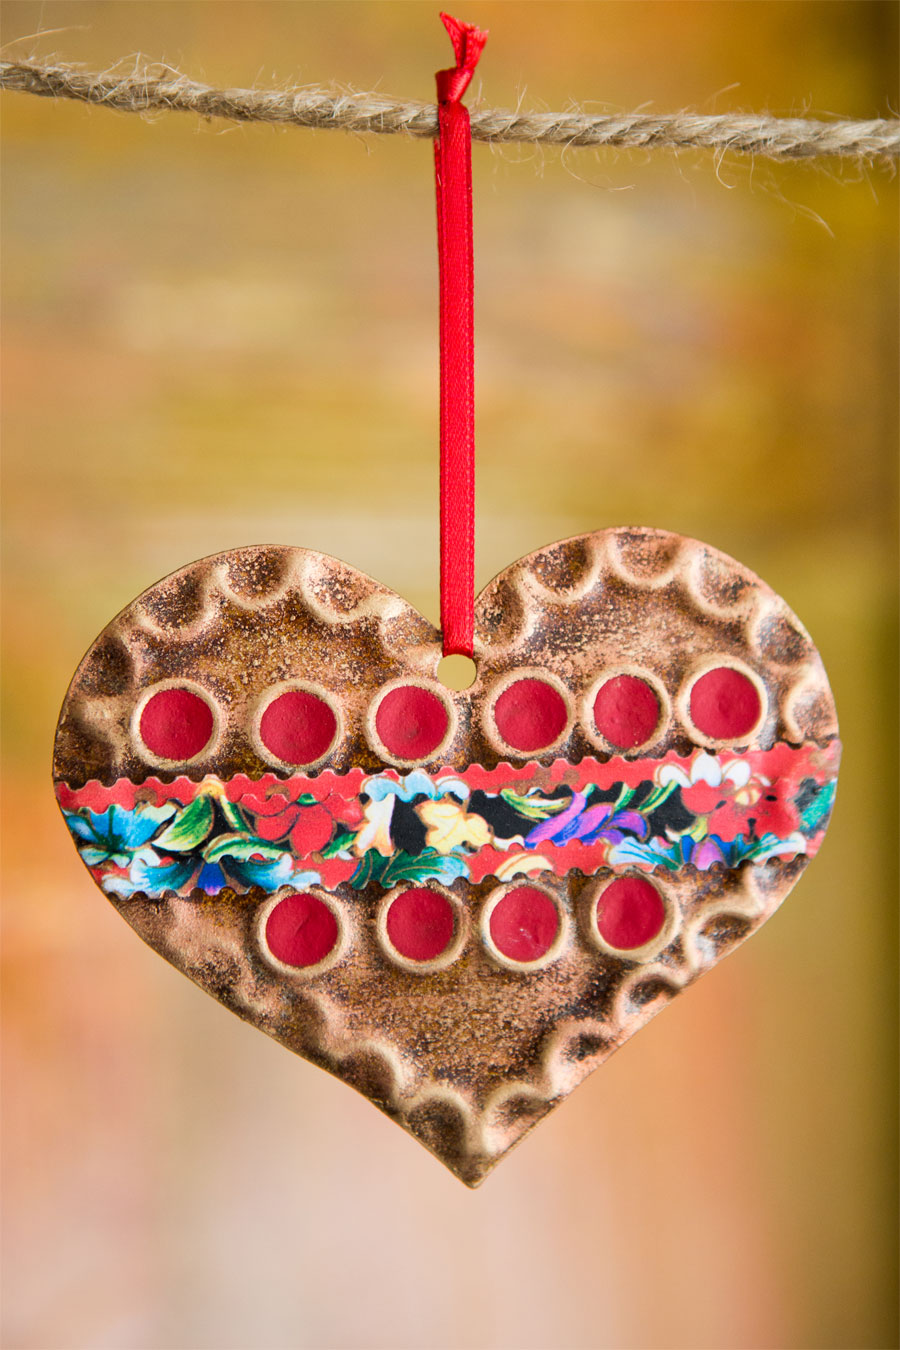 Sundance Heart Ornament